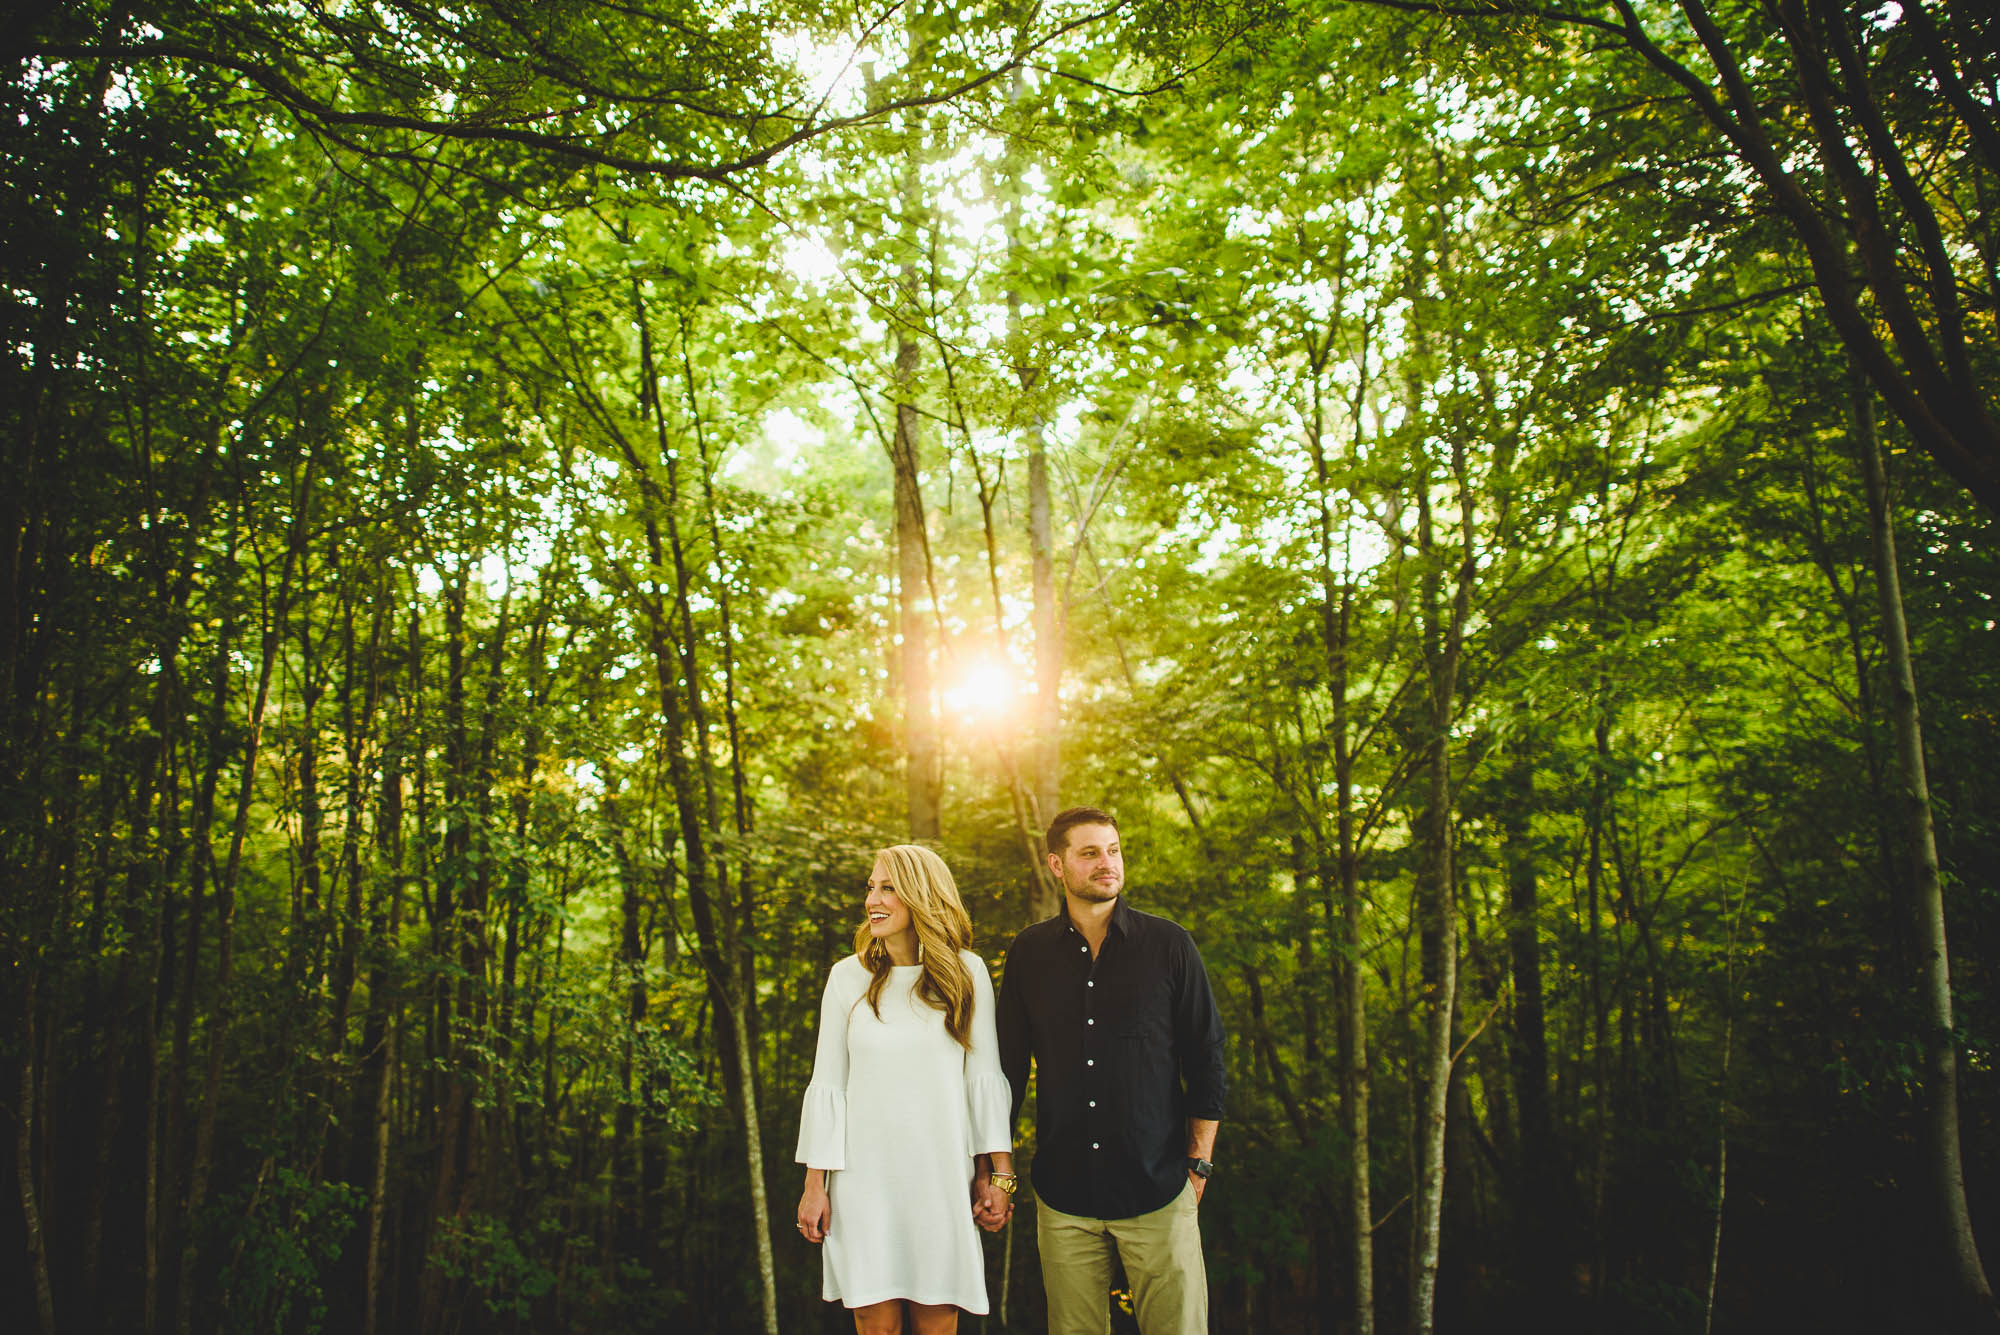 Arboretum engagement photography